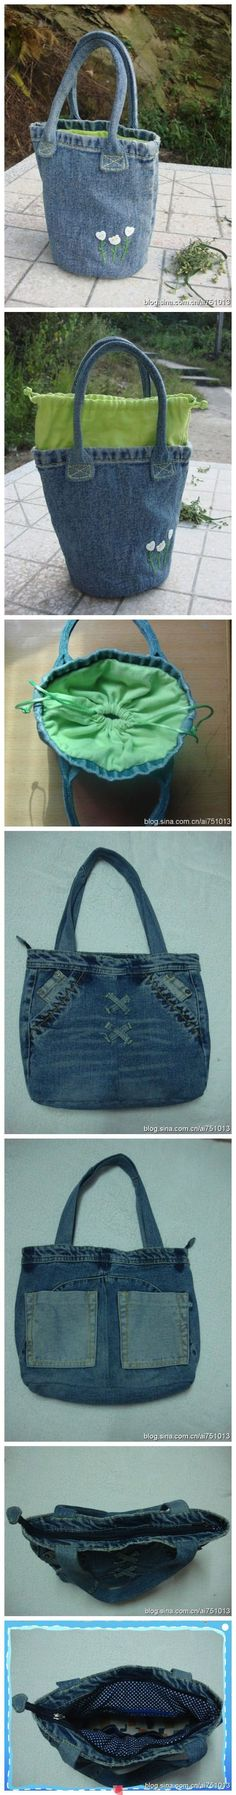 Well constructed recycled denim bag.